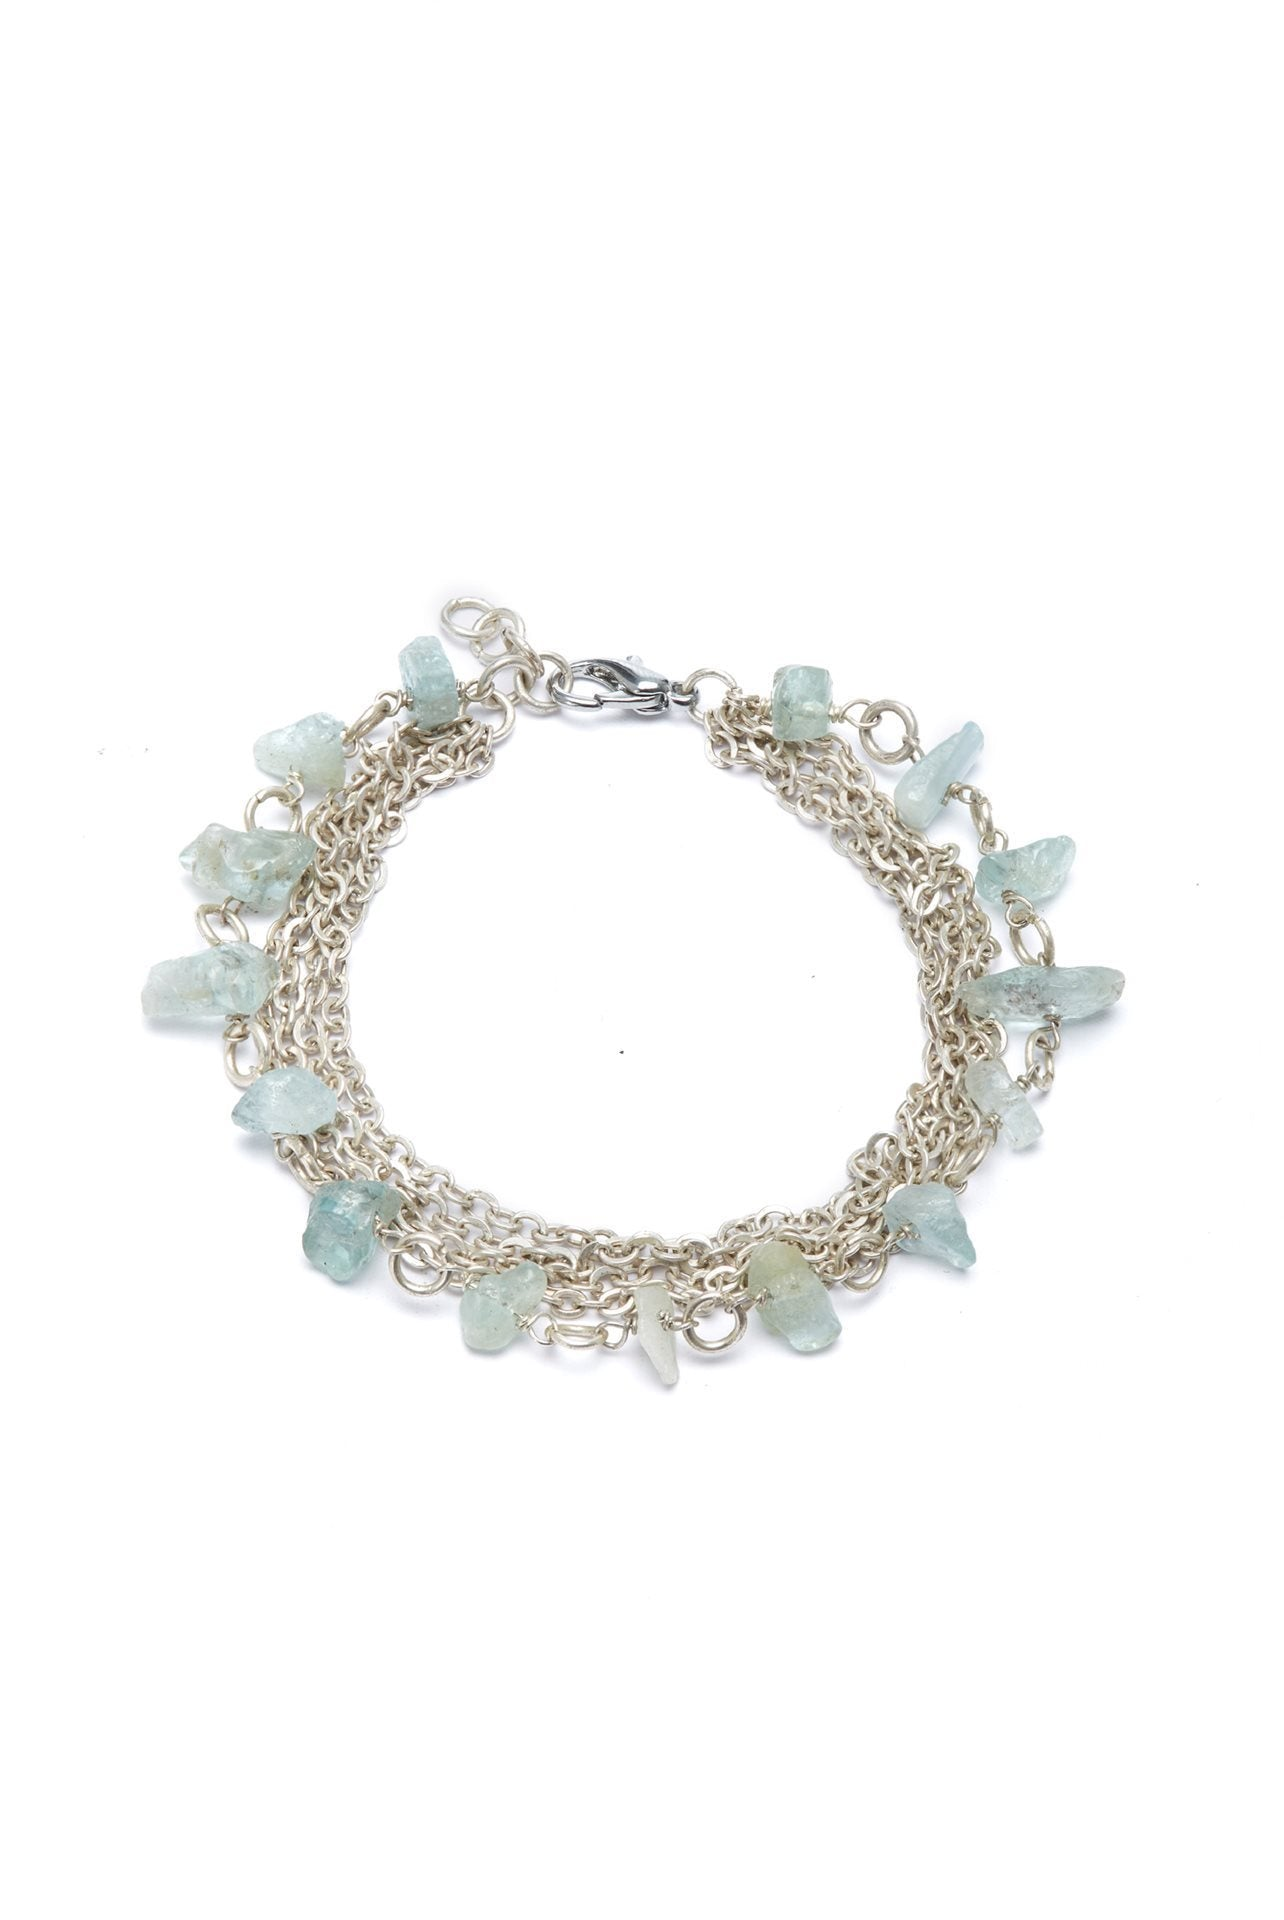 Aquamarine Bracelet with Silver Chains